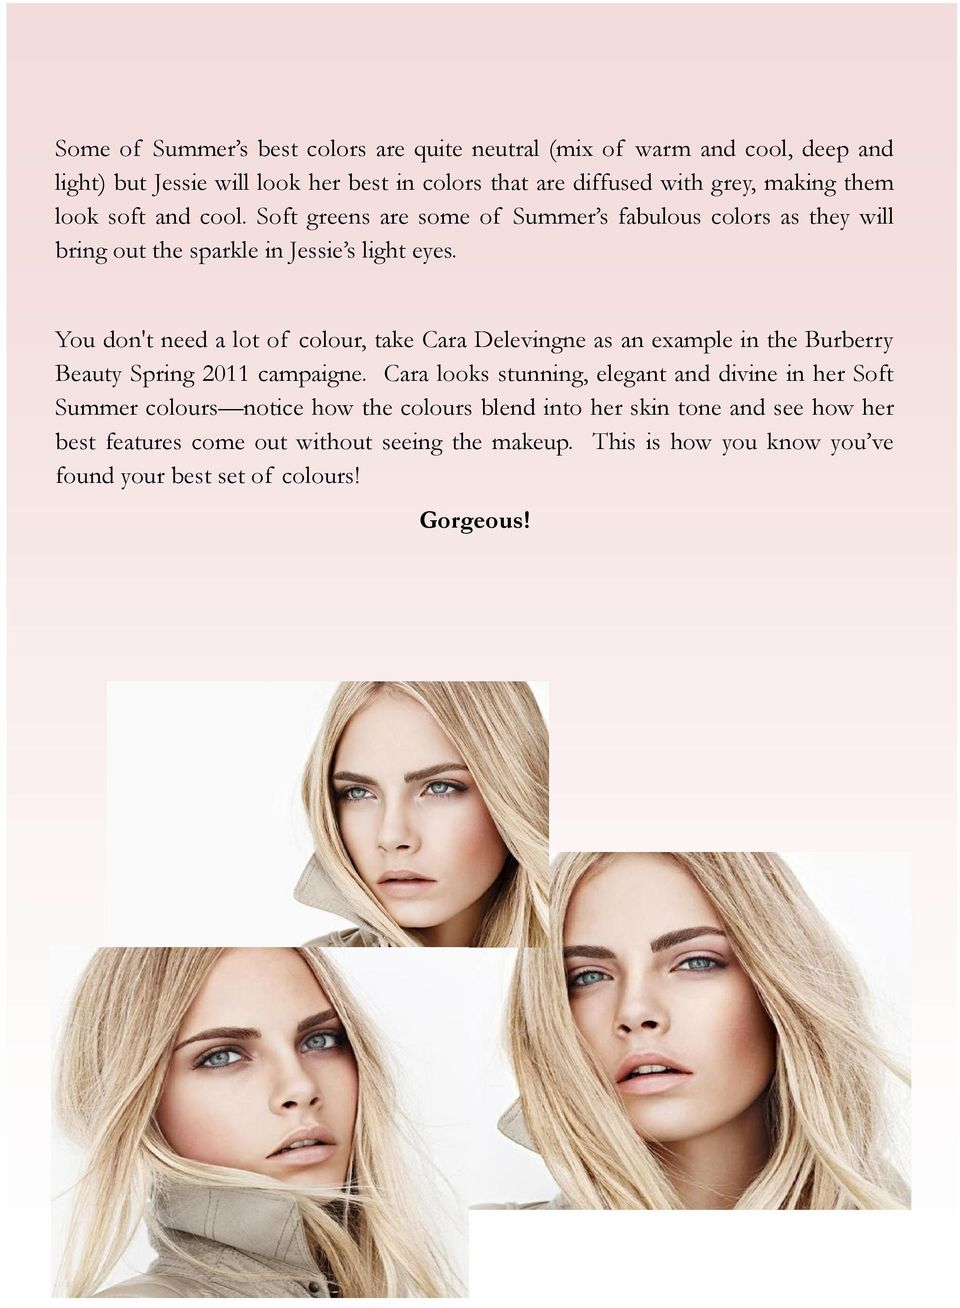 You don't need a lot of colour, take Cara Delevingne as an example in the Burberry Beauty Spring 2011 campaigne.